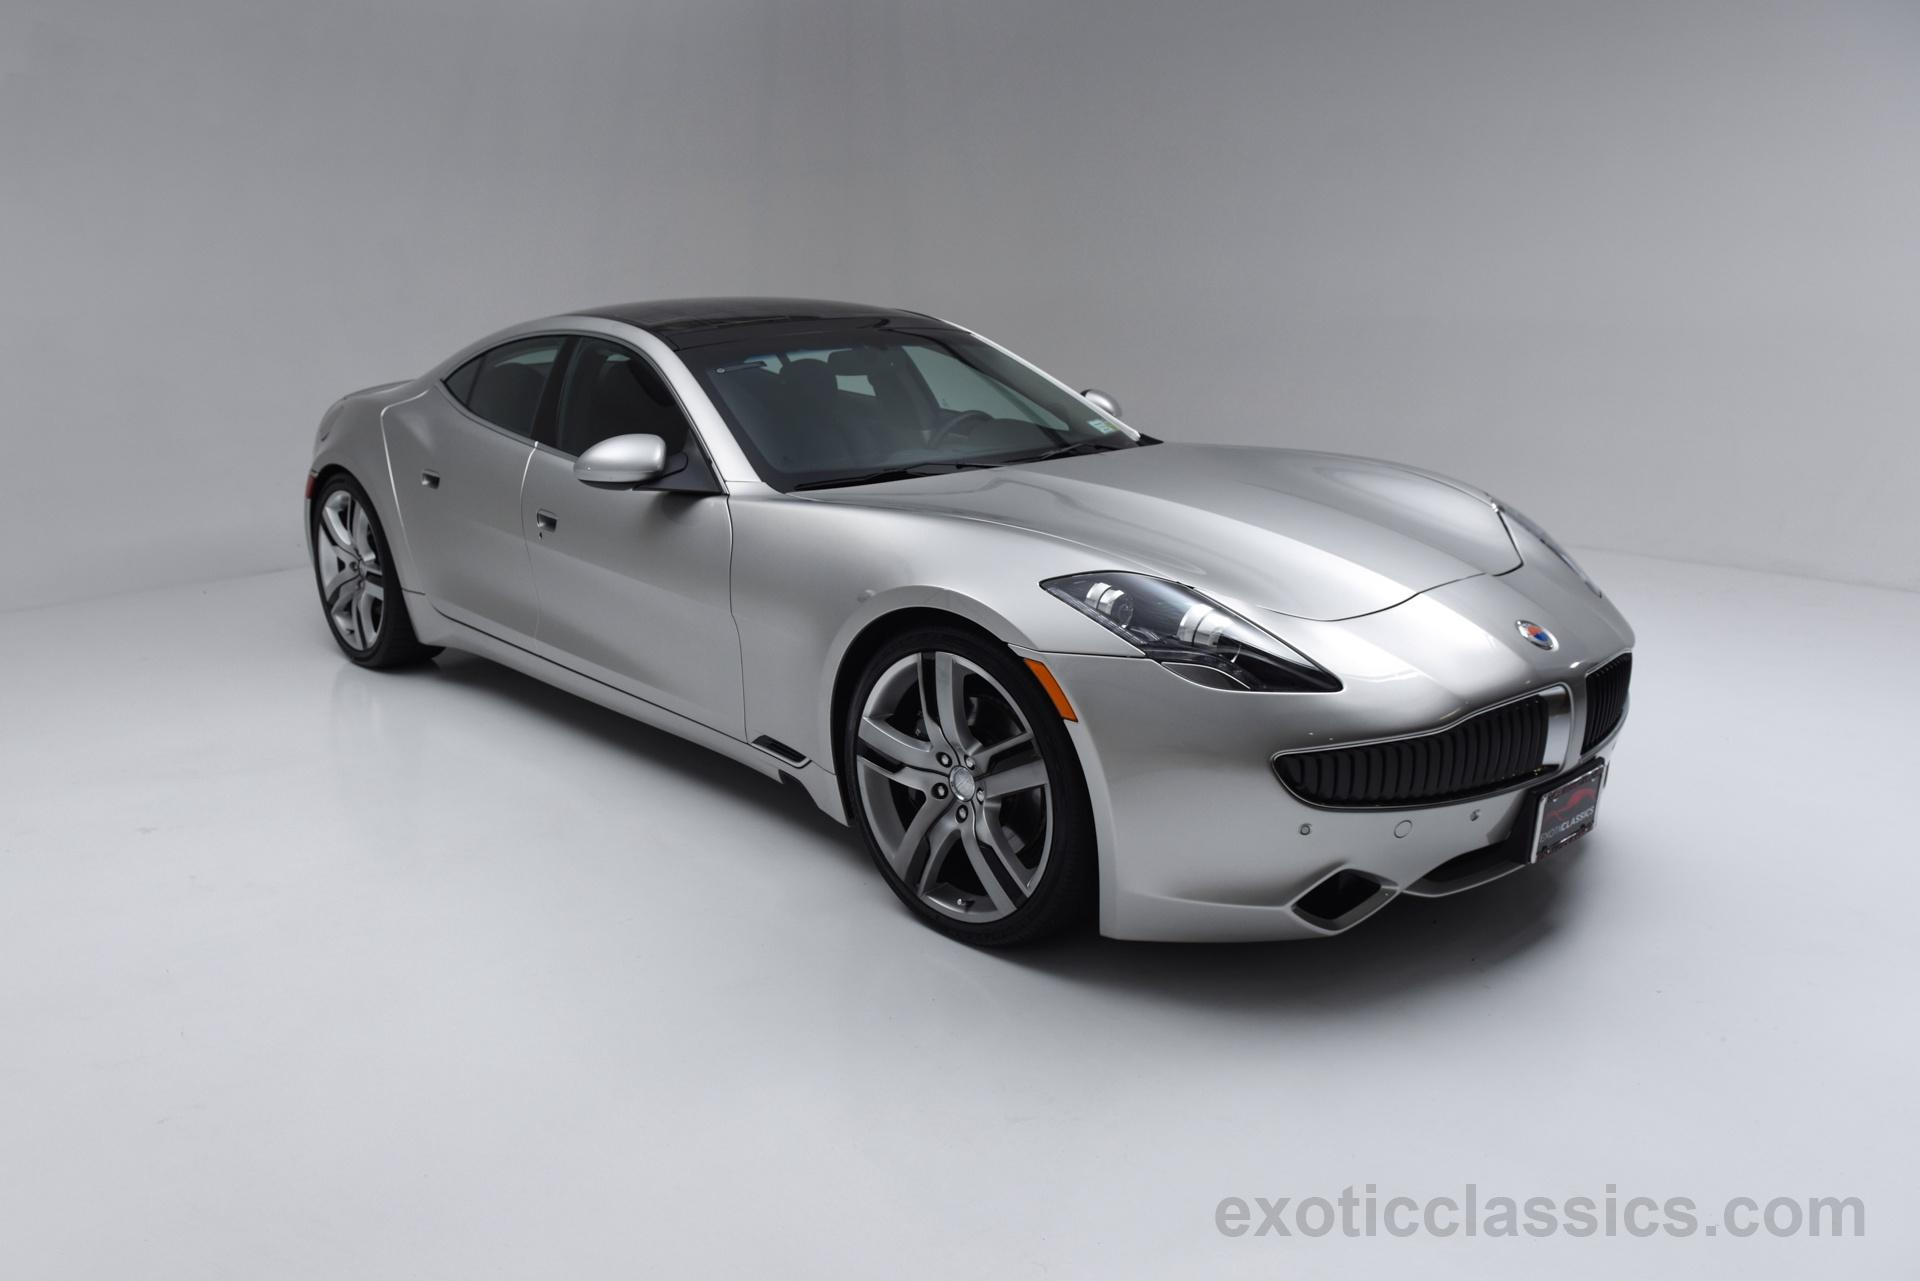 2012 Fisker Karma Collector Edition Exotic And Classic